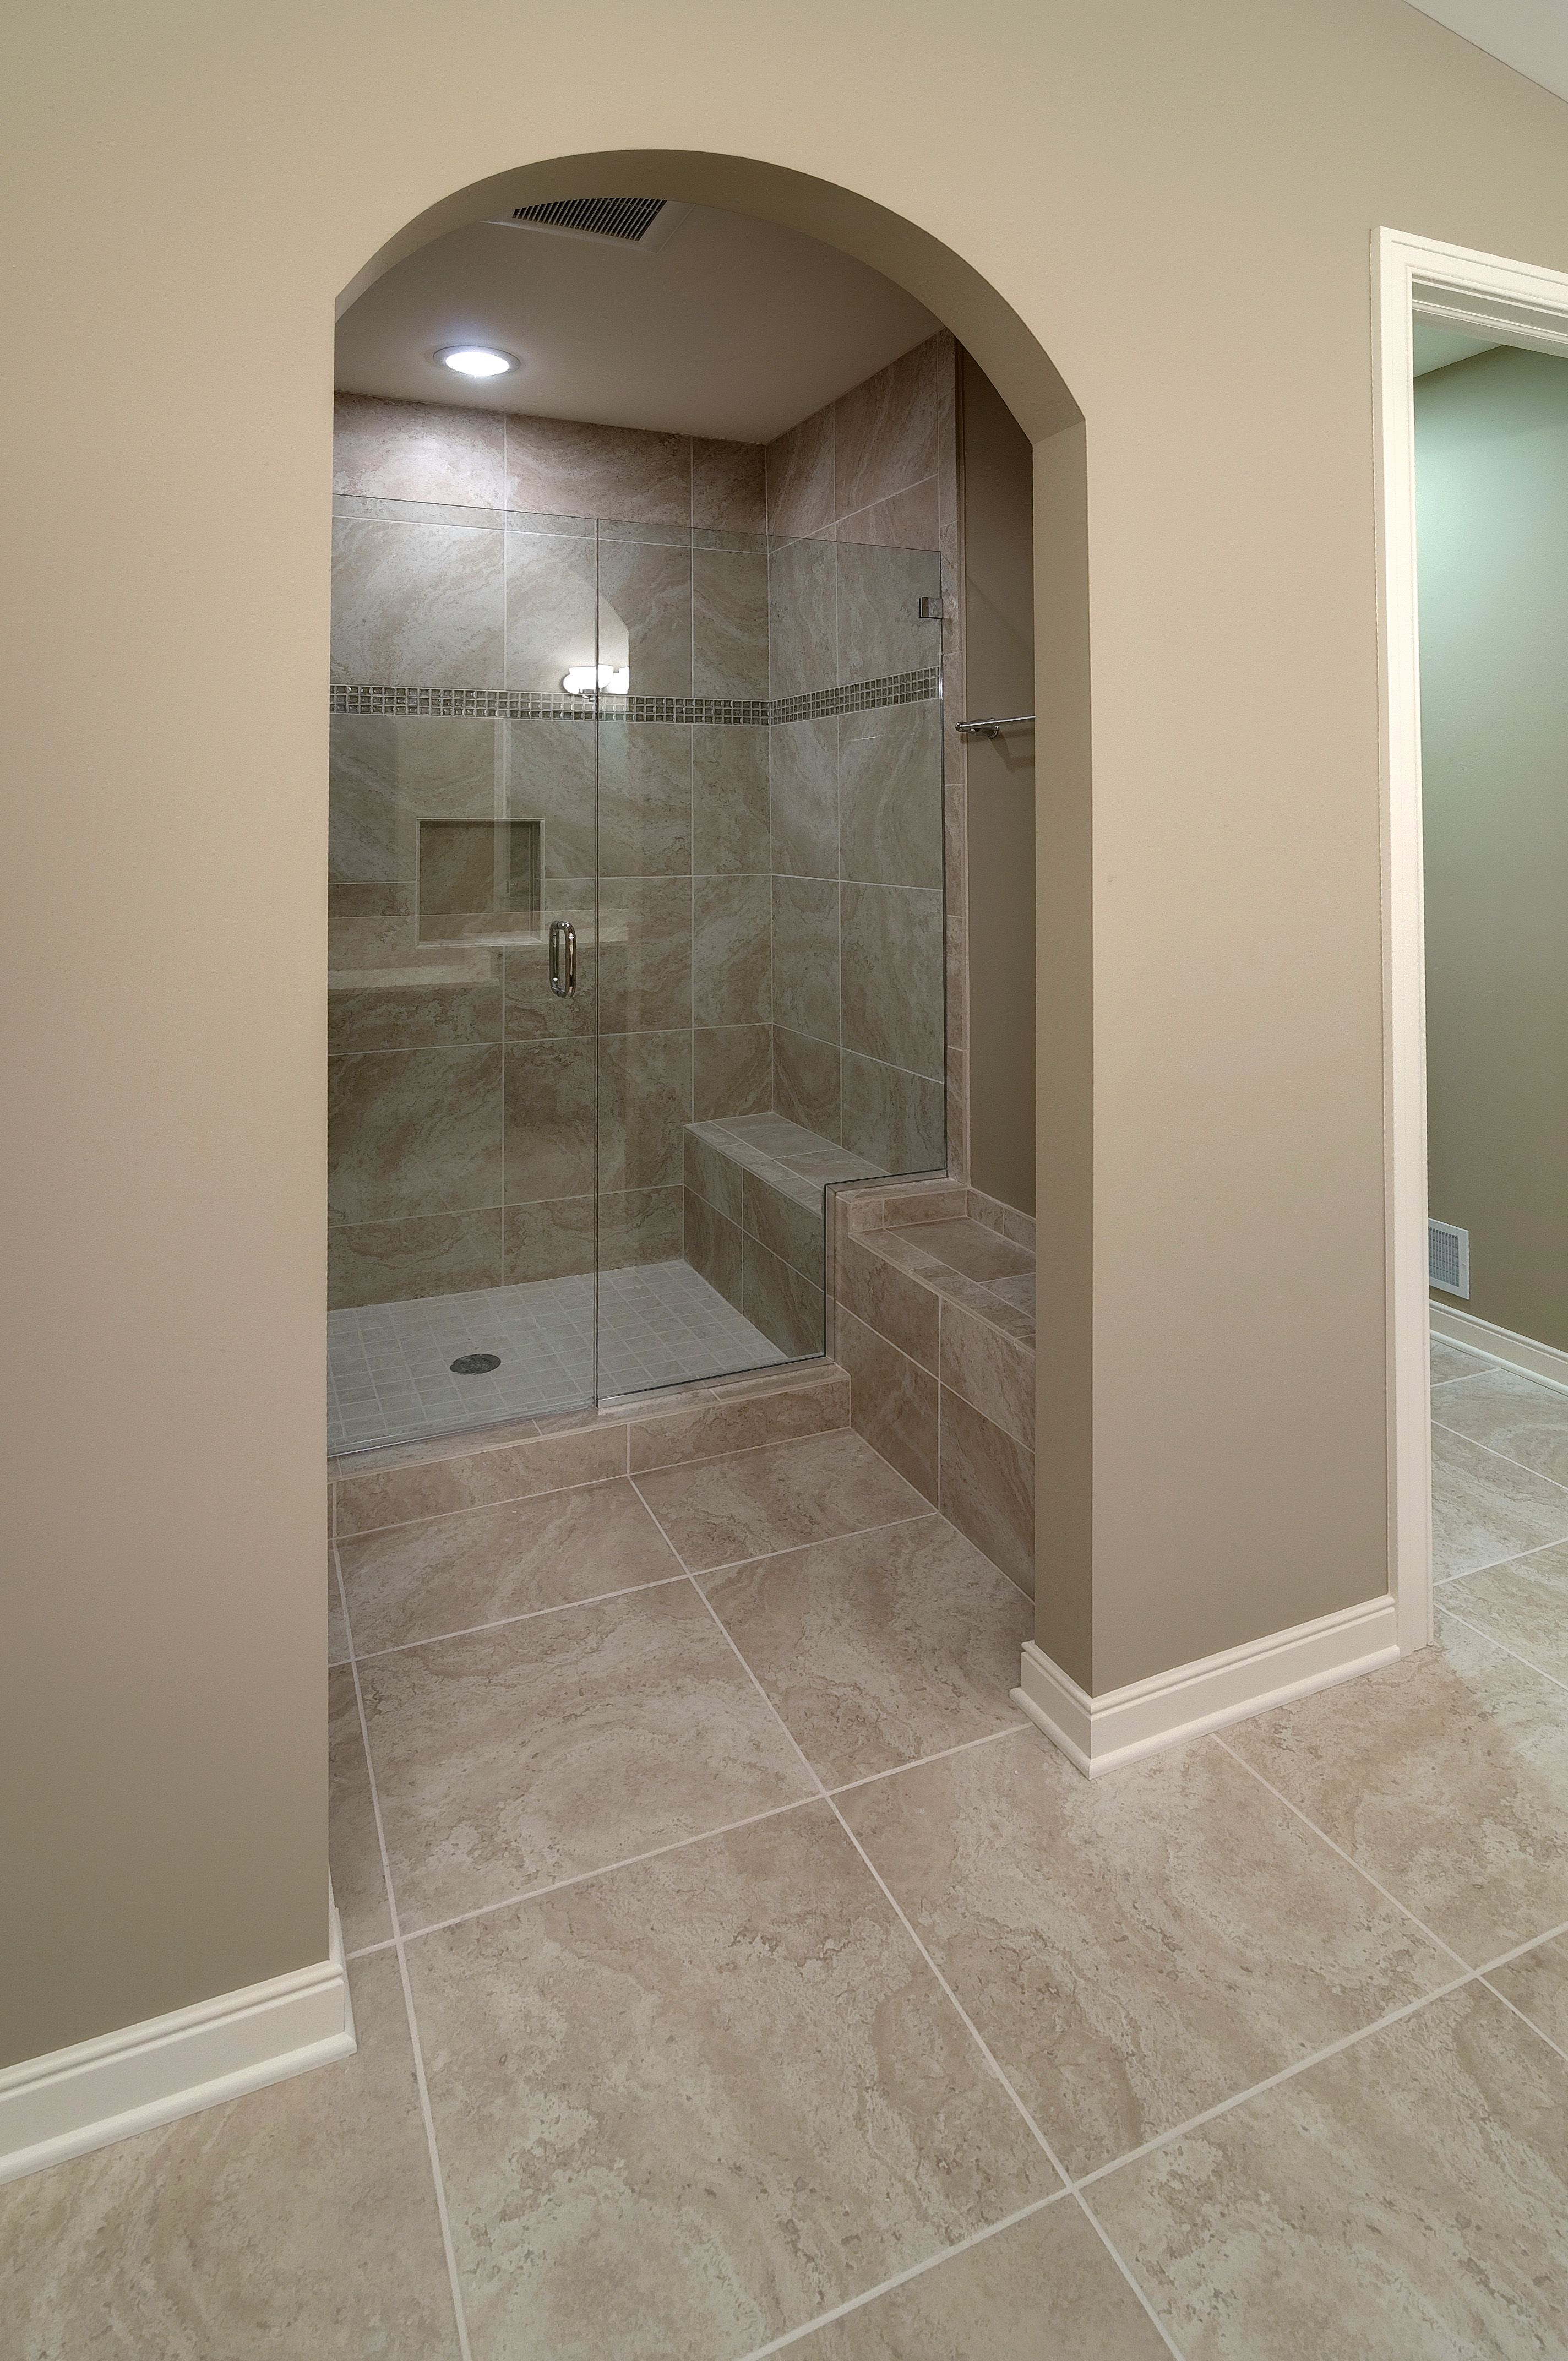 18 x18 Shaw Tivoli Color 100 flooring and shower wall tile. Restoration  Hardware Flat Cappuccino